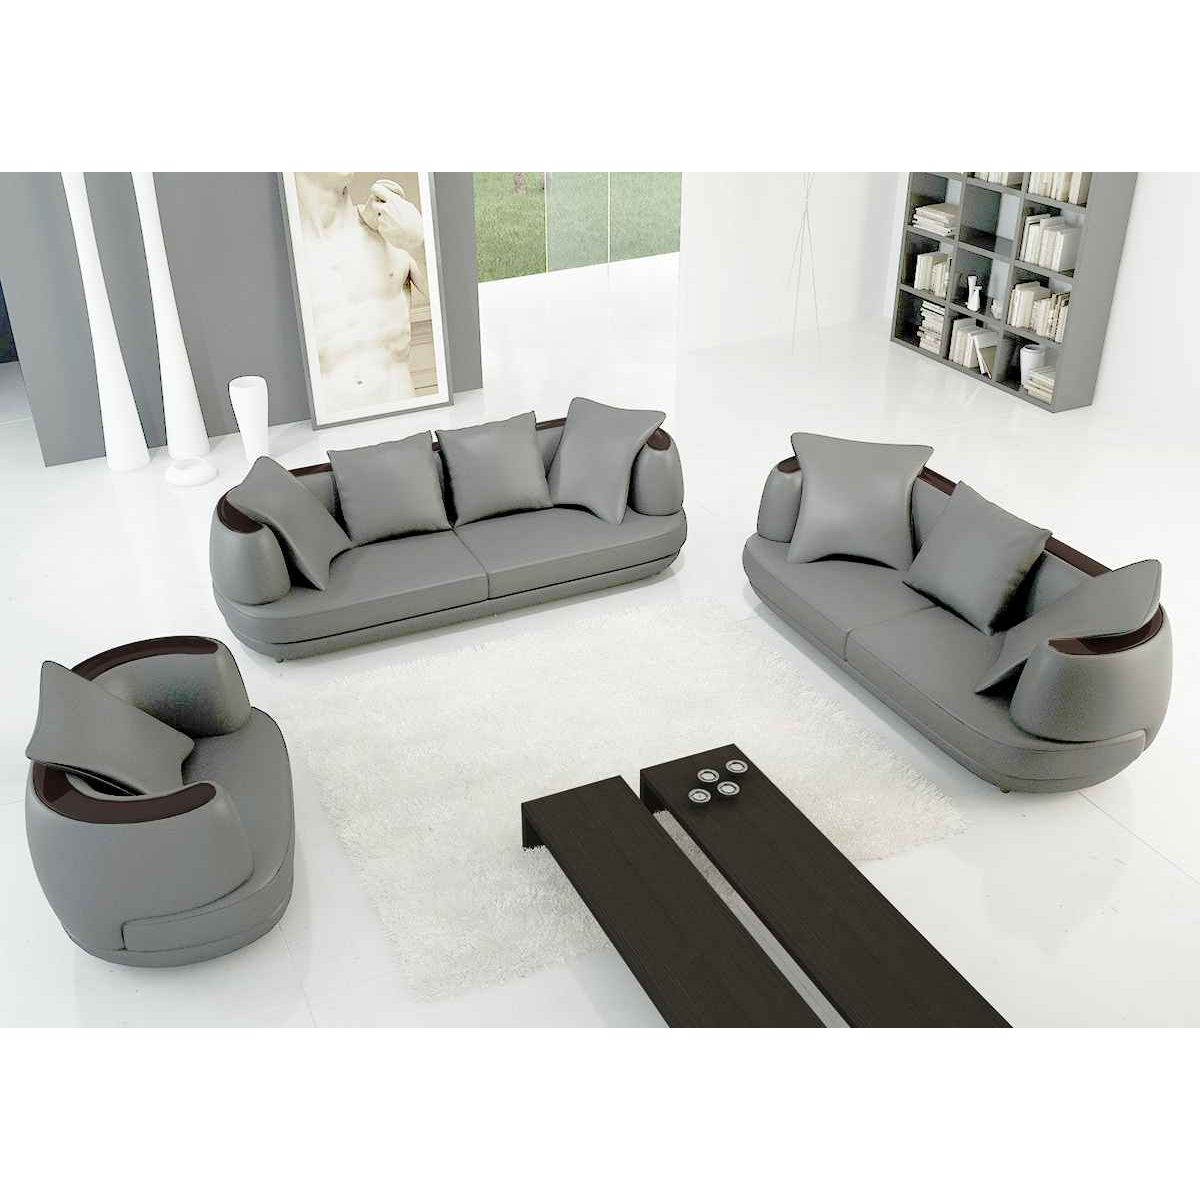 Deco in paris ensemble canape 3 2 1 places en cuir gris - Canape 2 places et 3 places ...